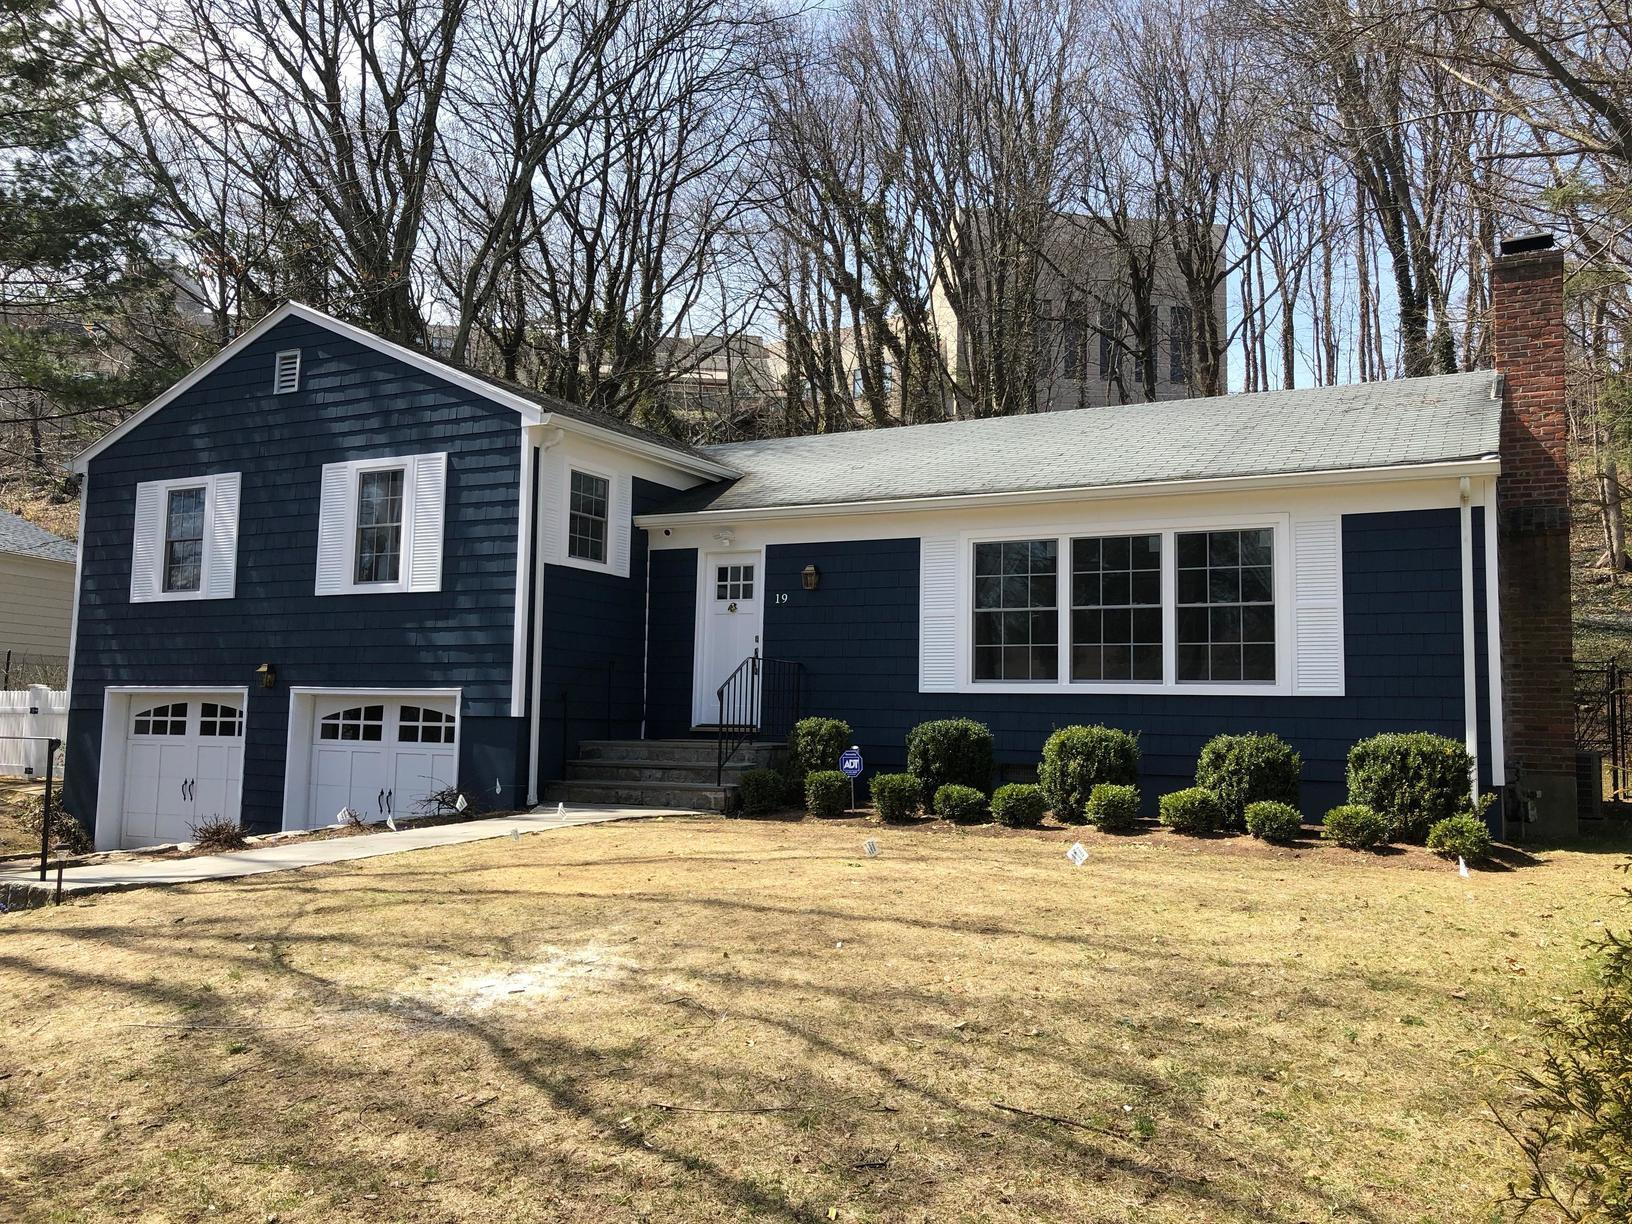 Exterior Siding, Trim, Windows and Entry Door Replacement - Greenwich, CT - After Photo